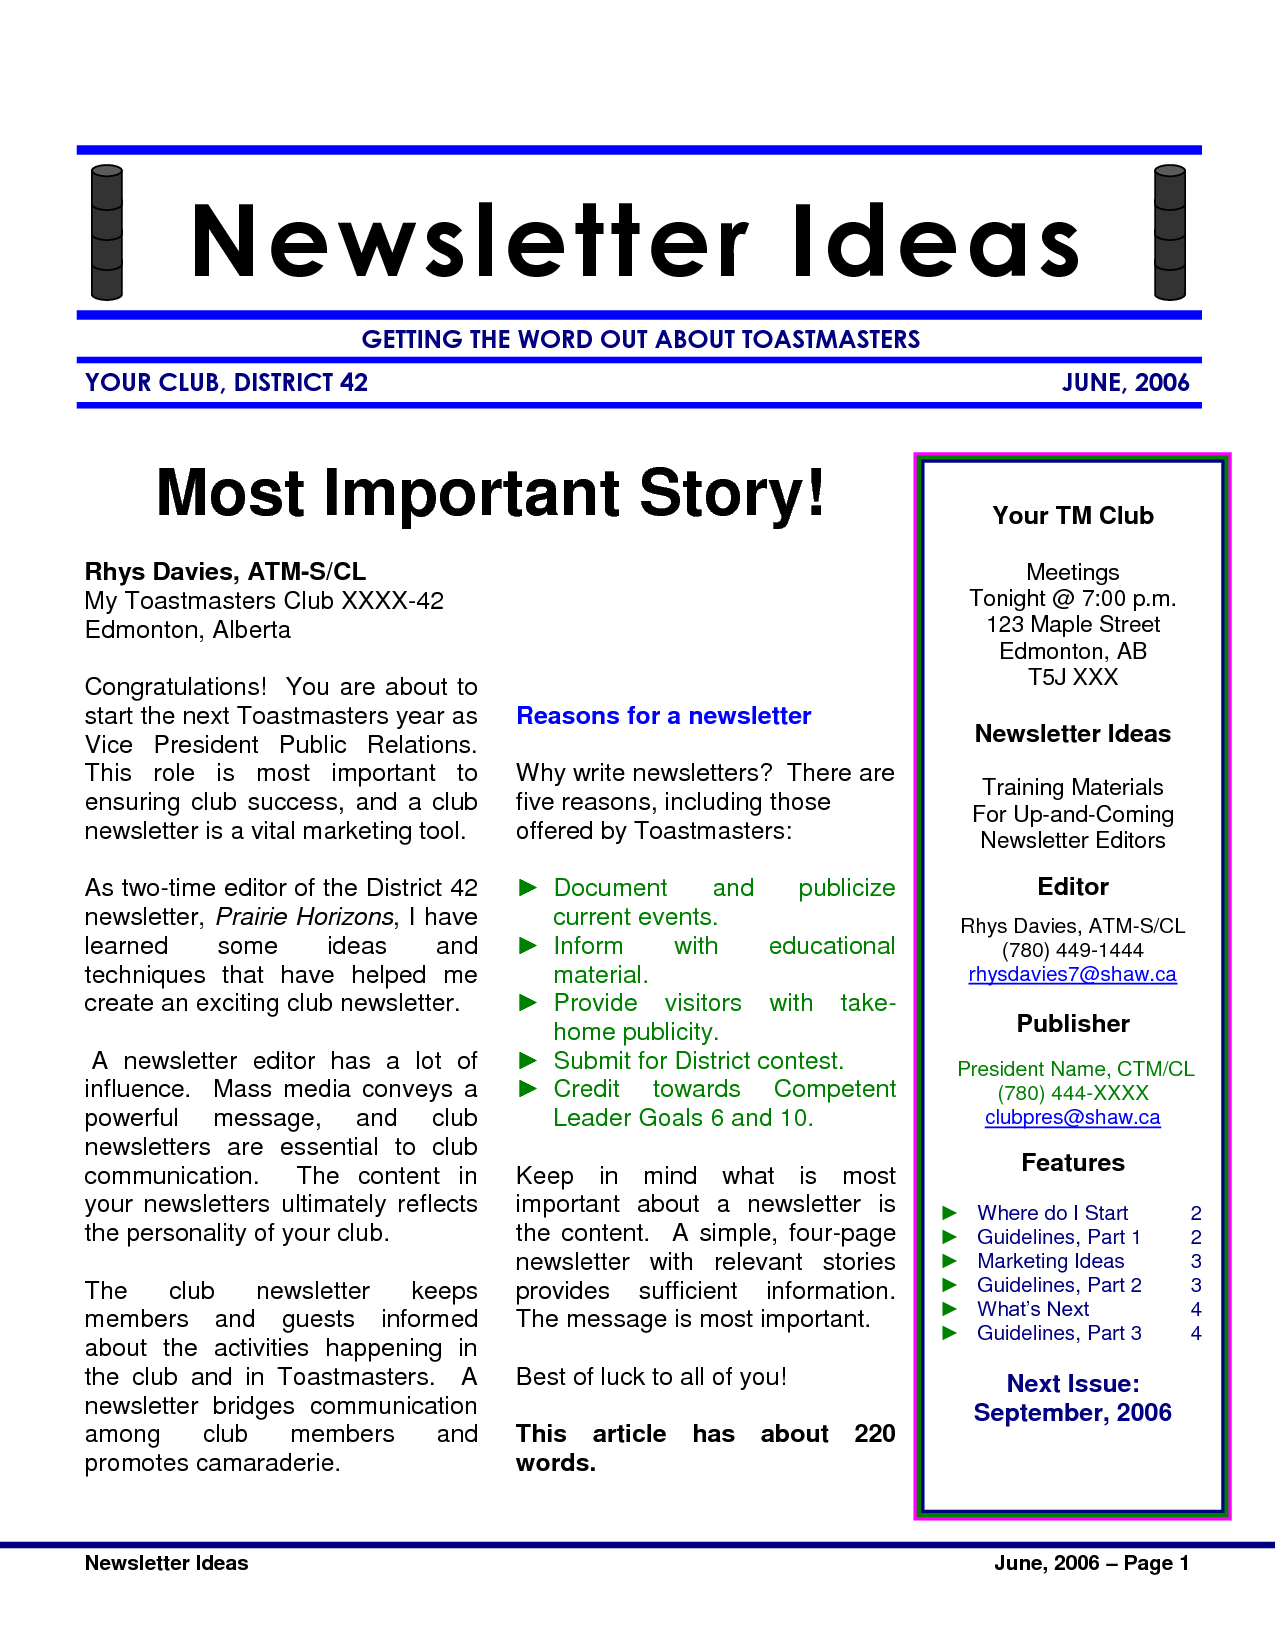 Create a newsletter using Publisher